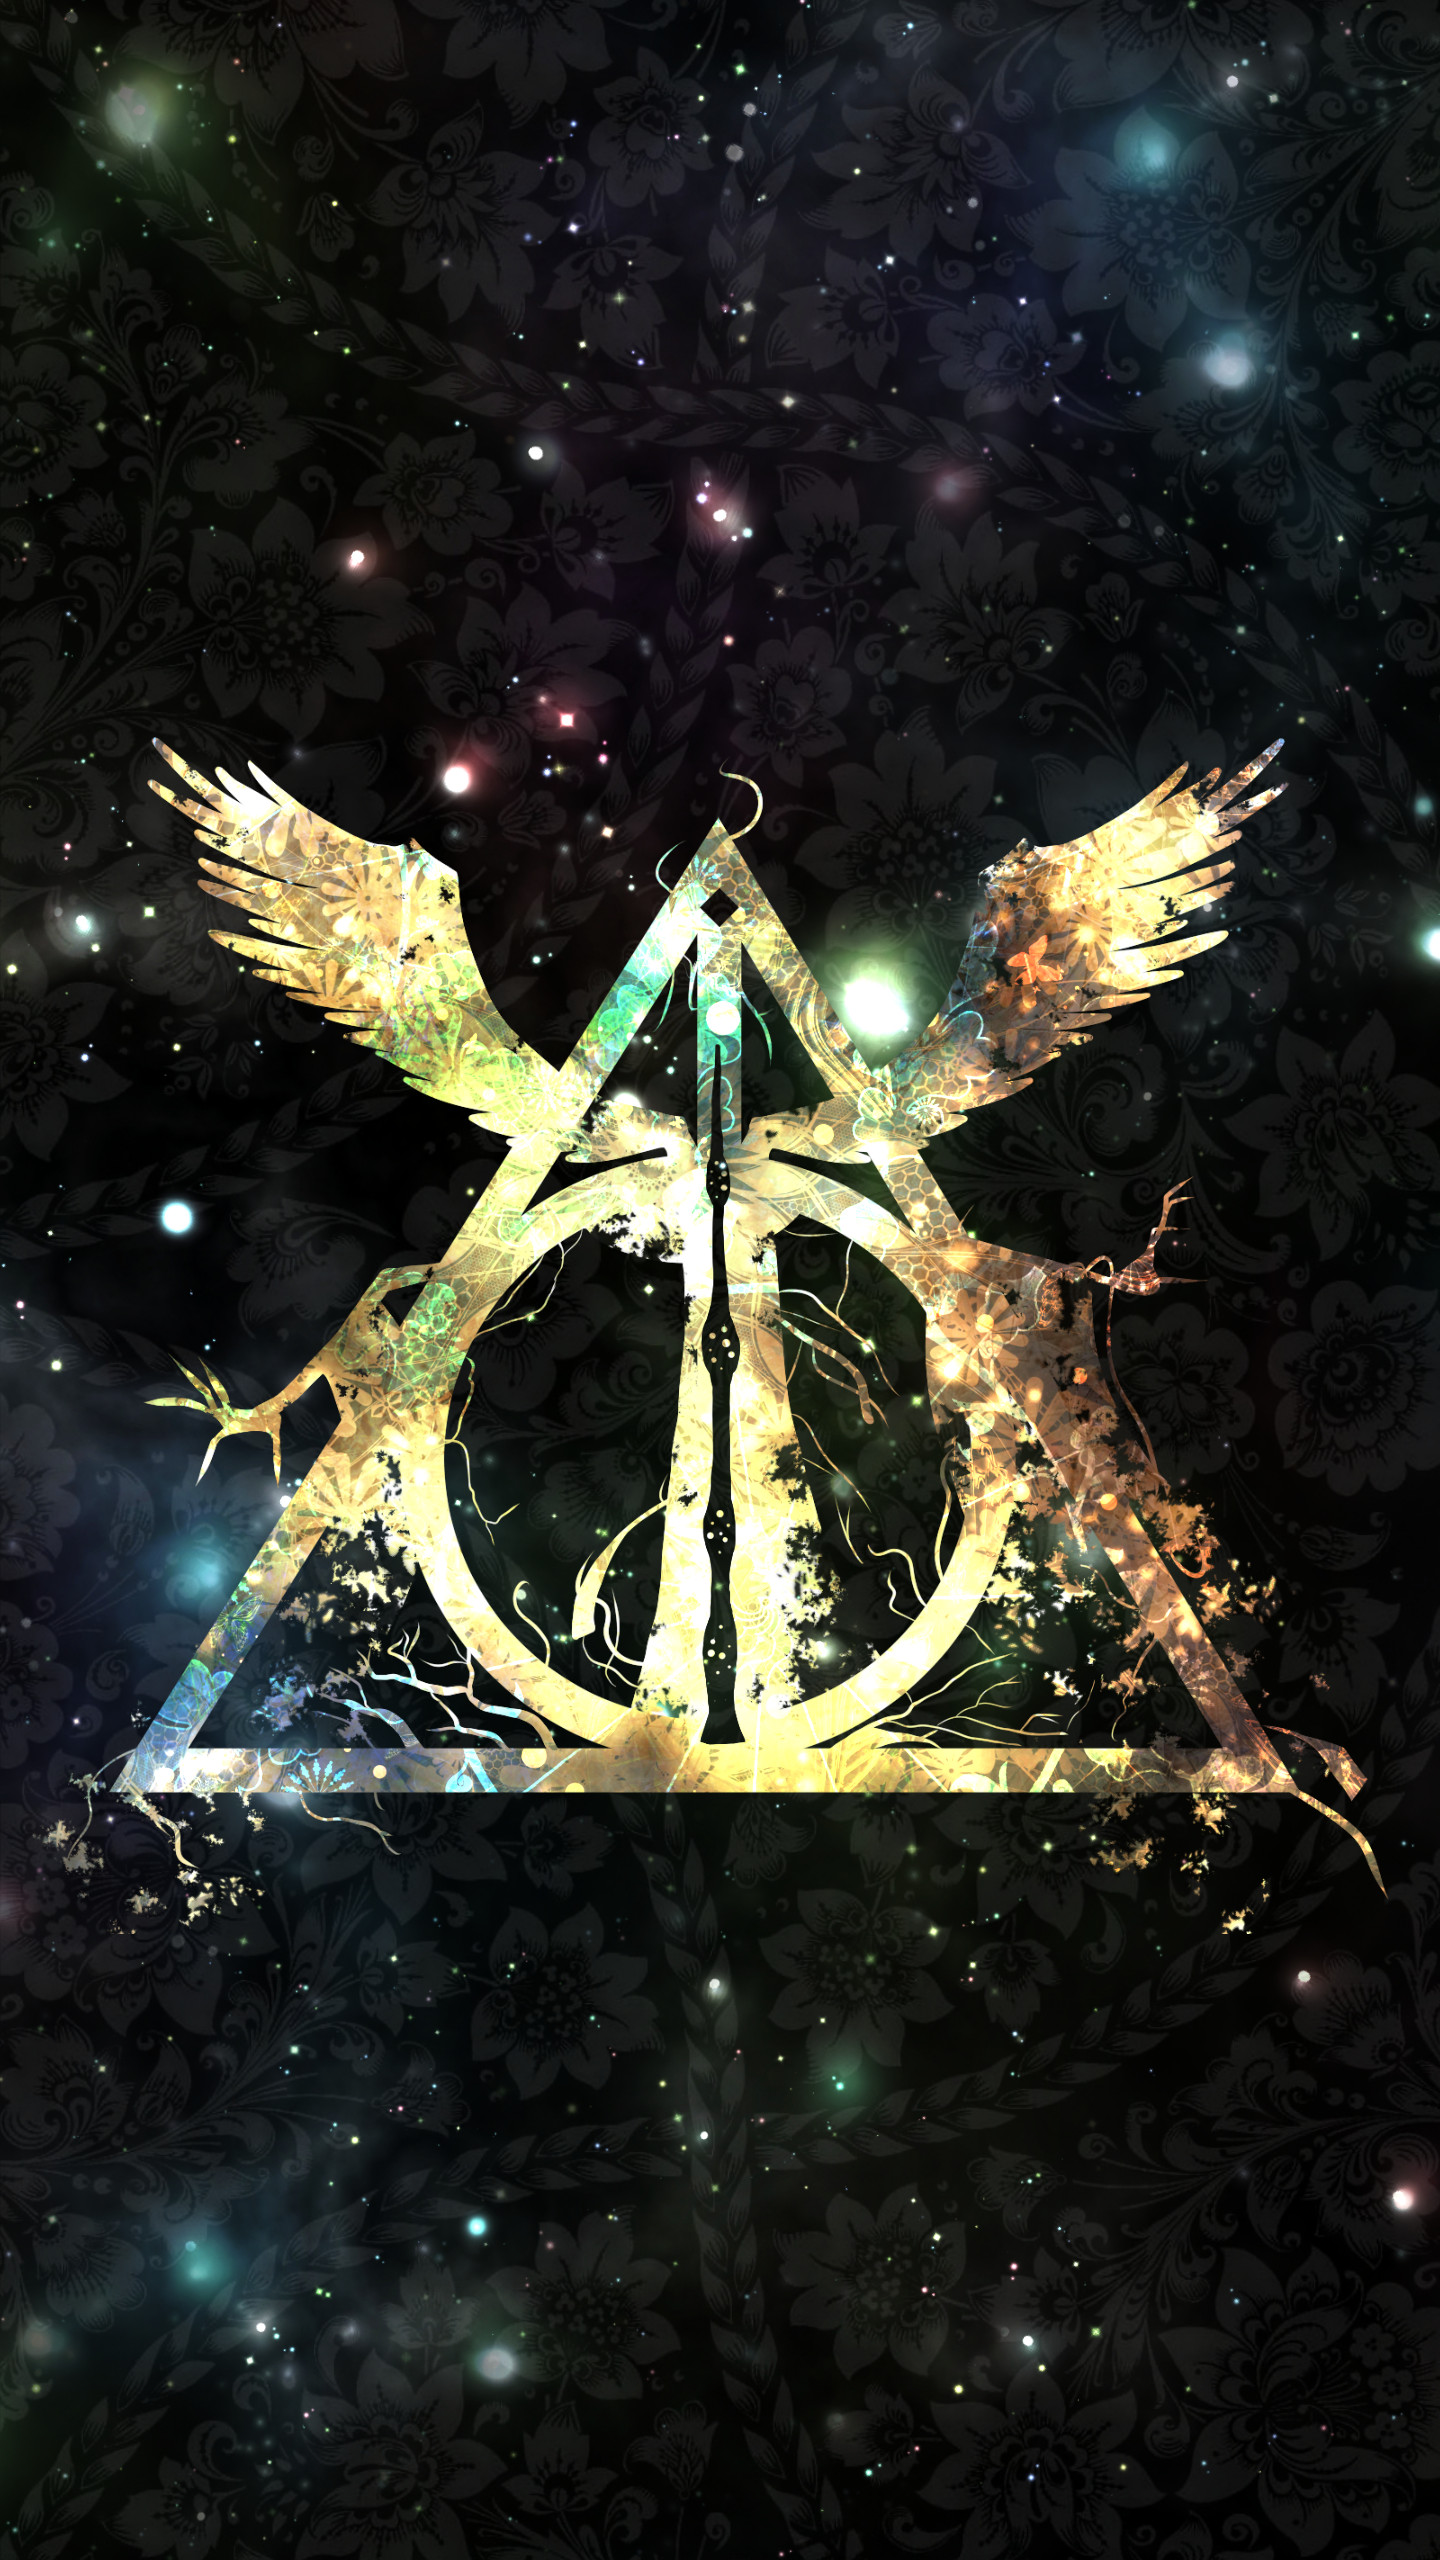 harry potter iphone wallpaper New Harry Potter And The Deathly Hallows Symbol Wallpaper Wide